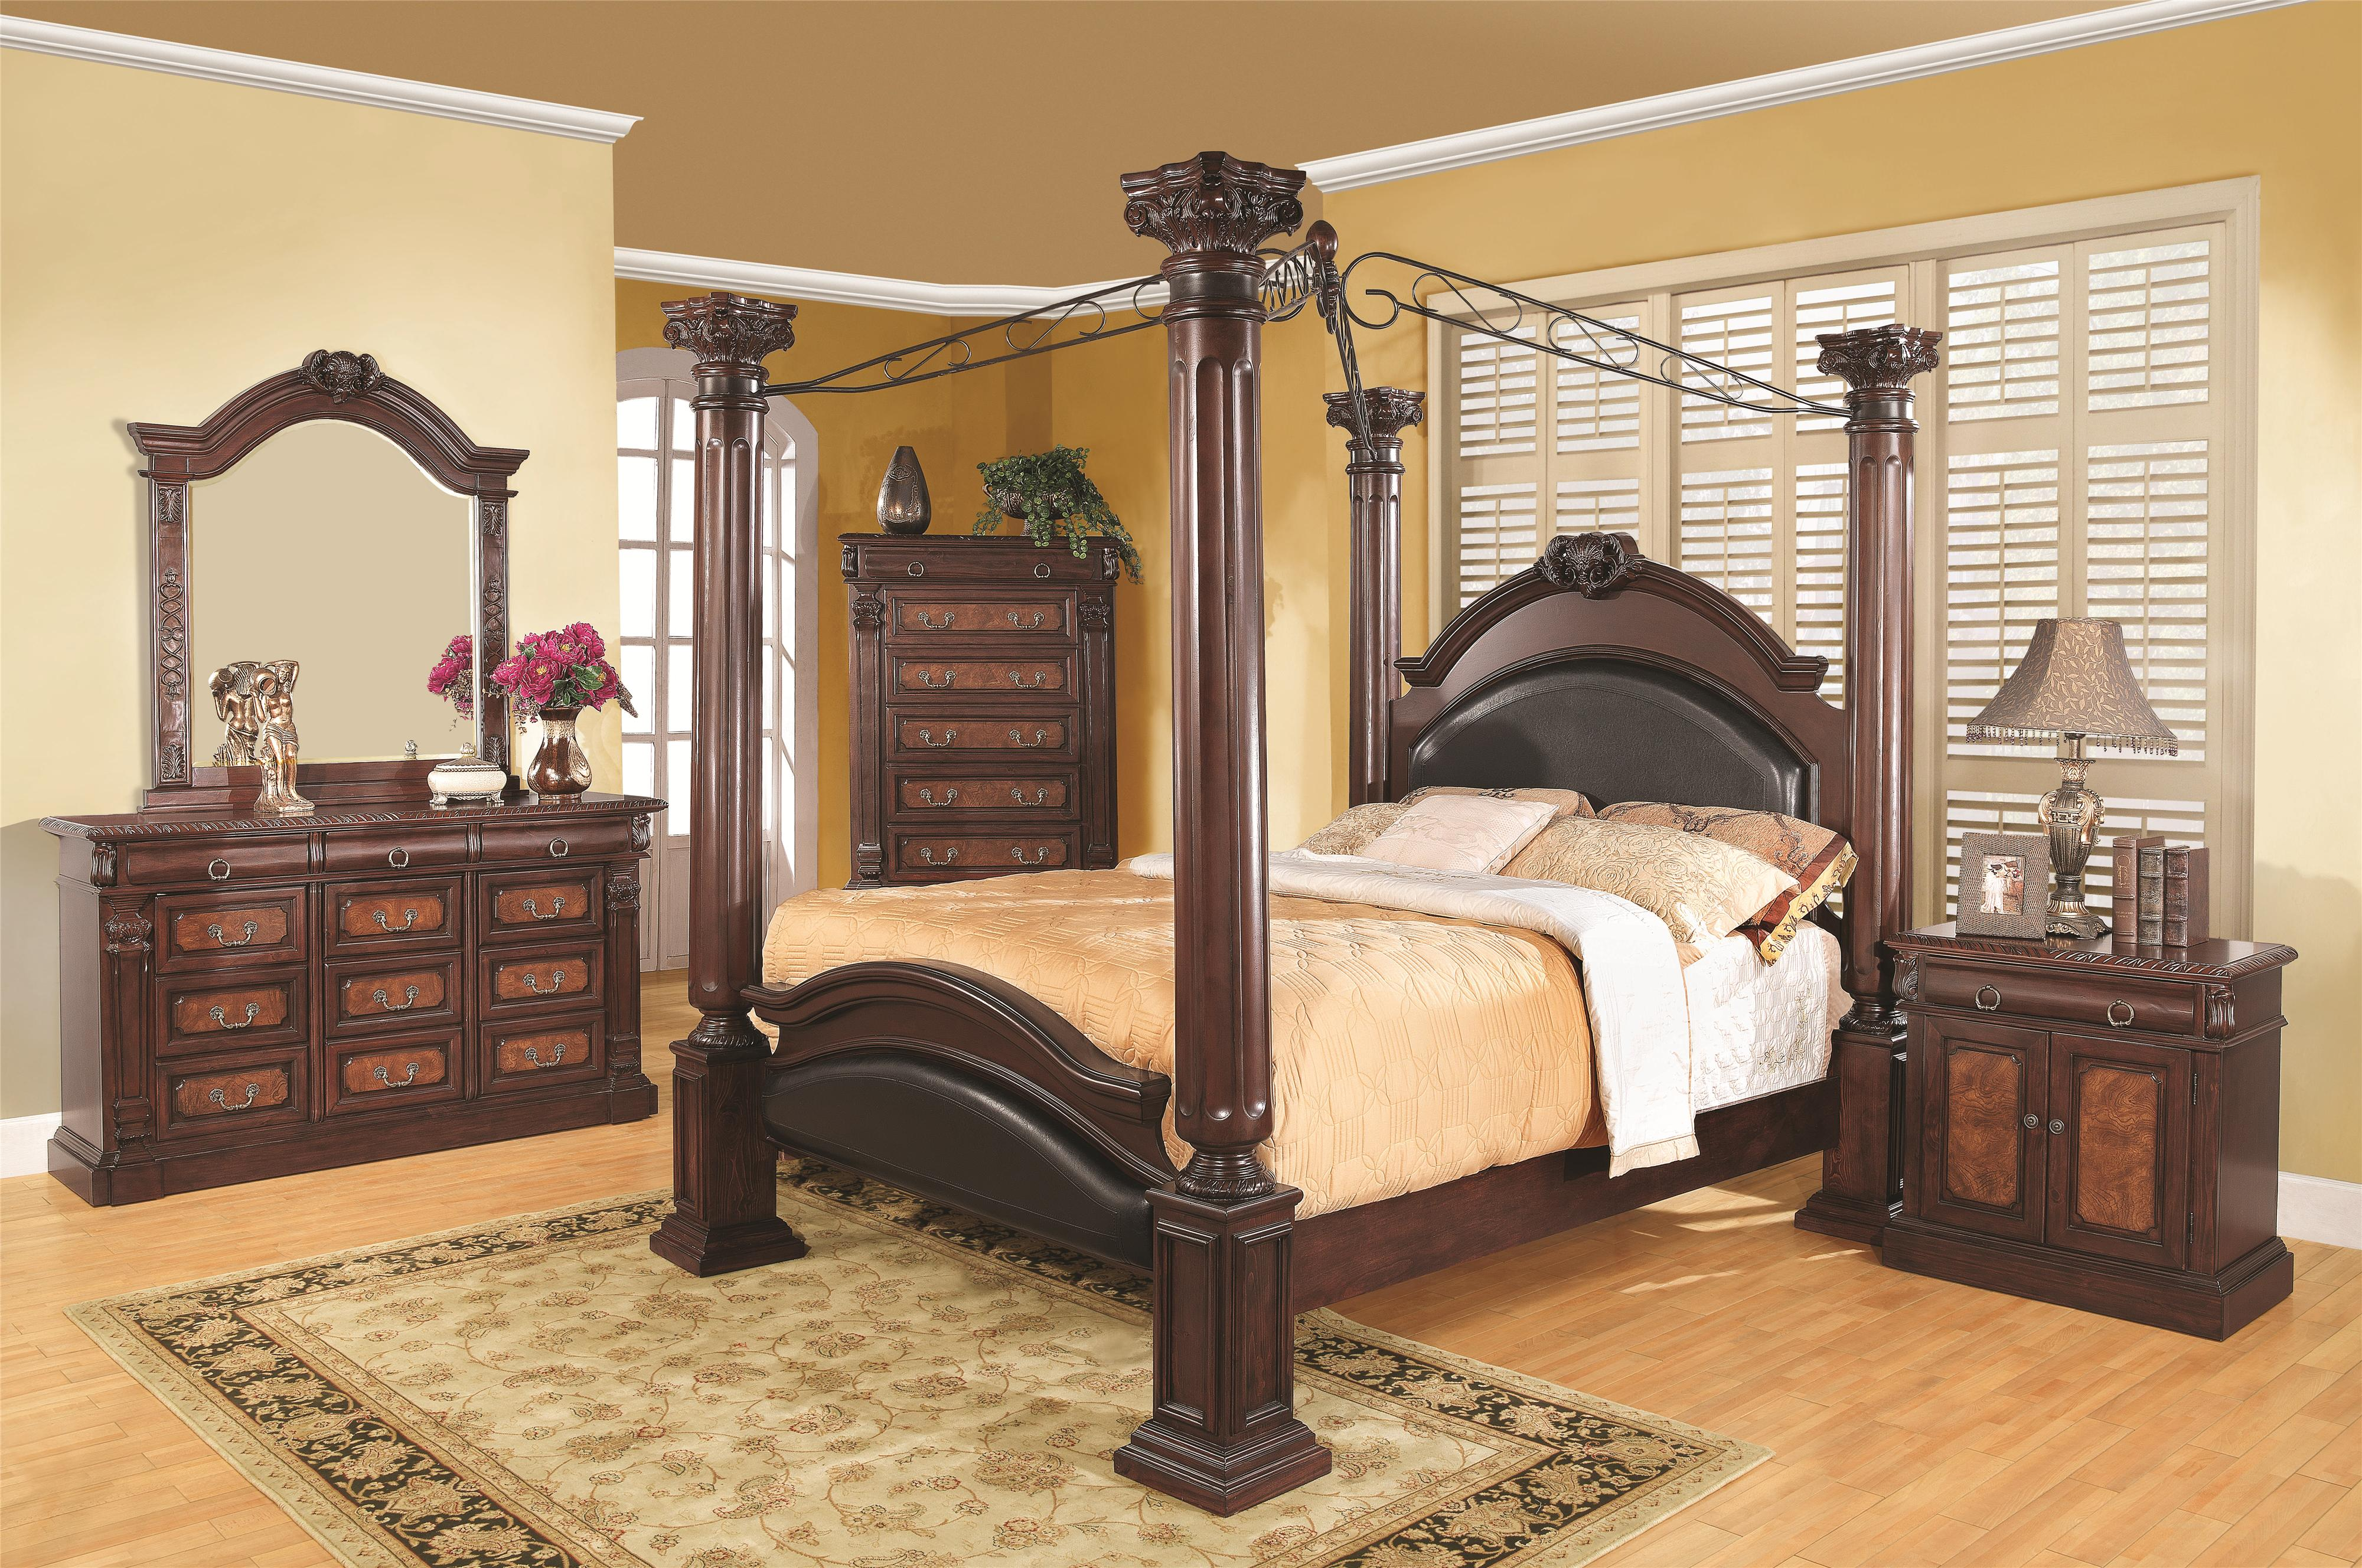 Coaster Grand Prado Queen Bedroom Group - Item Number: 2022 Q Bedroom Group 1